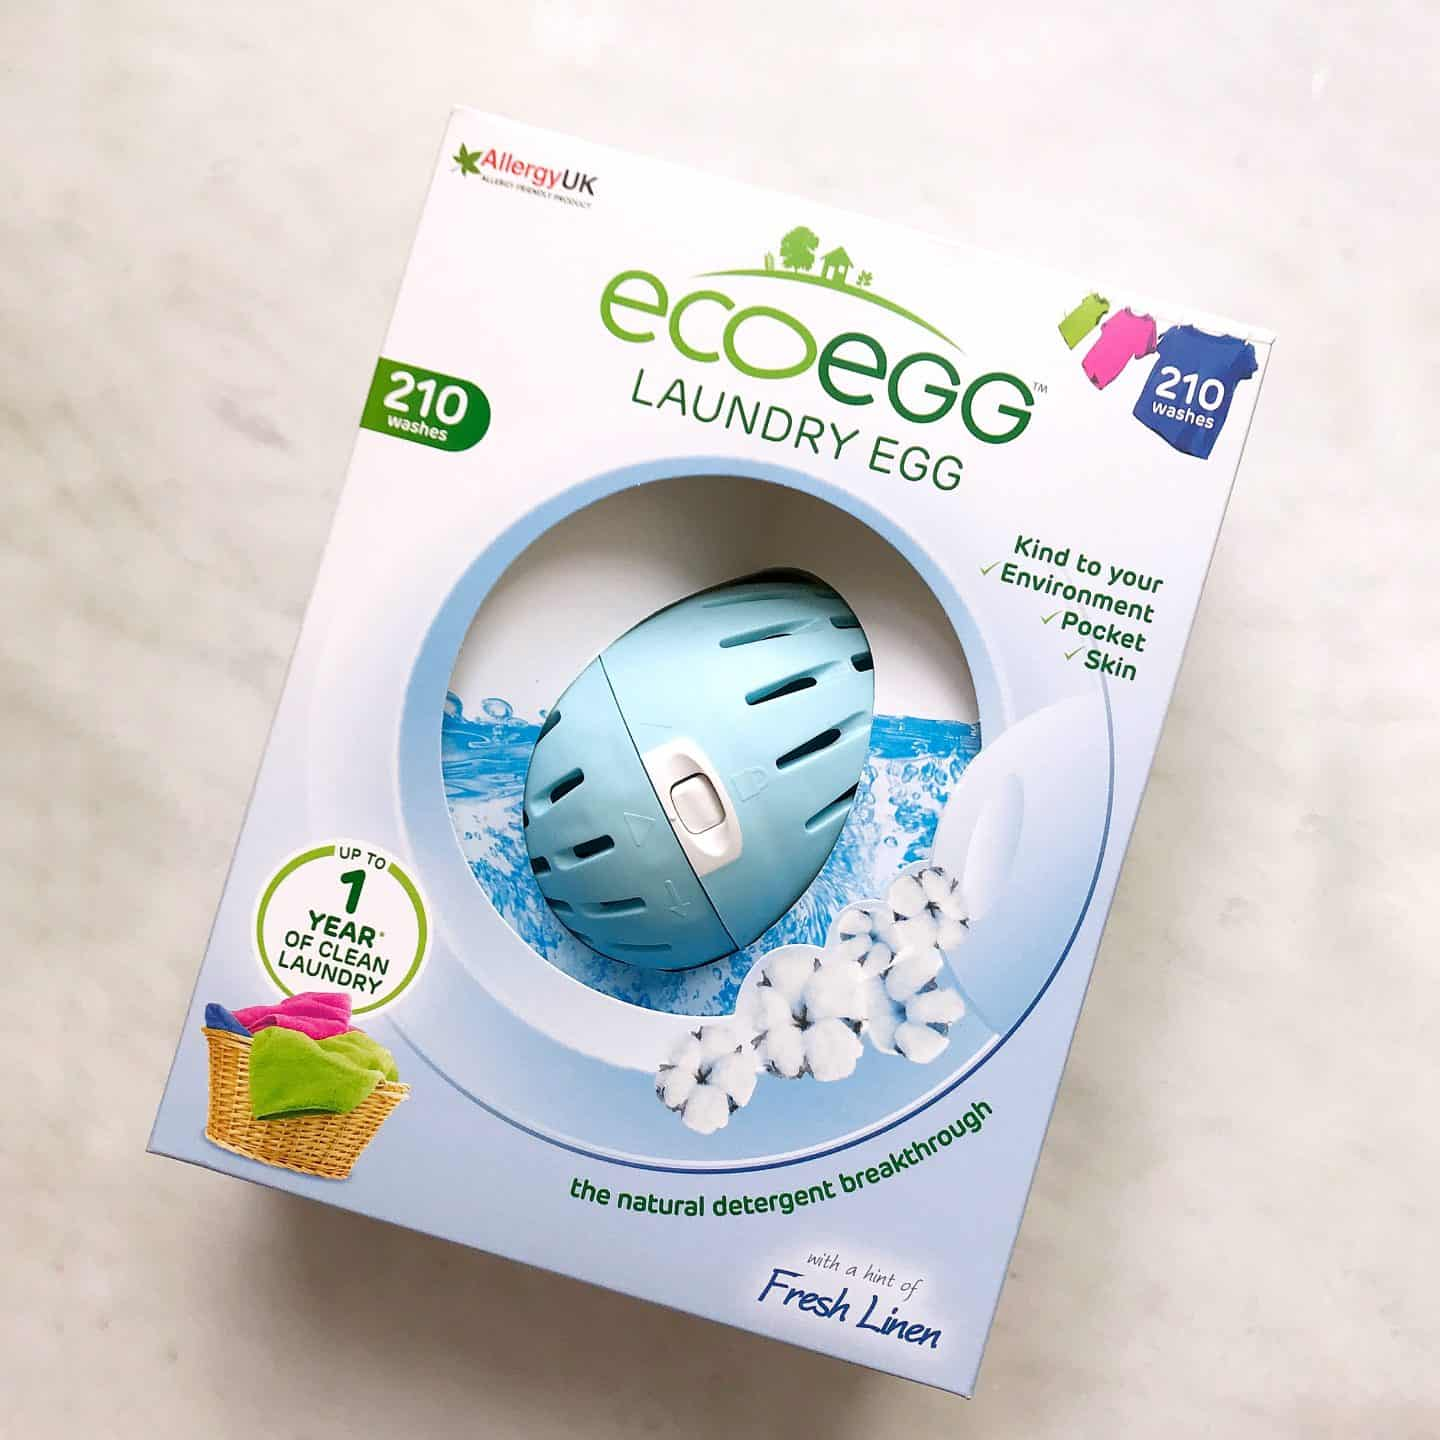 Eco Egg for more eco-friendly laundry